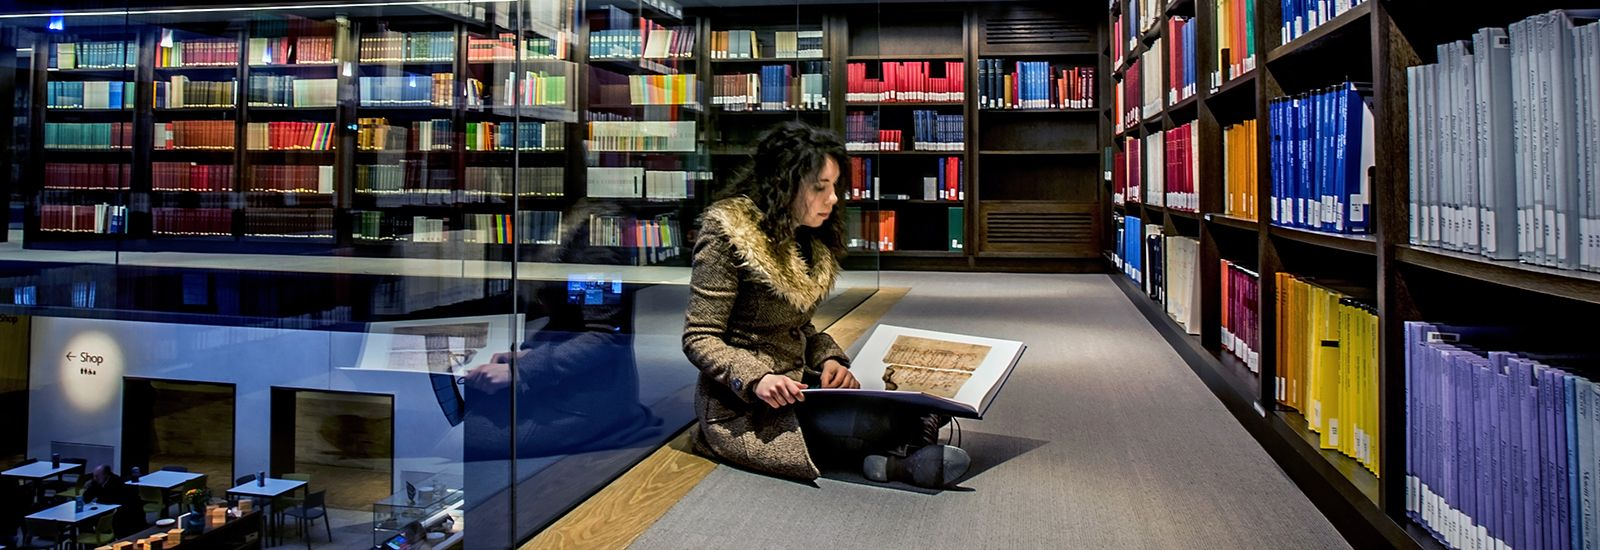 A student in the Weston Library